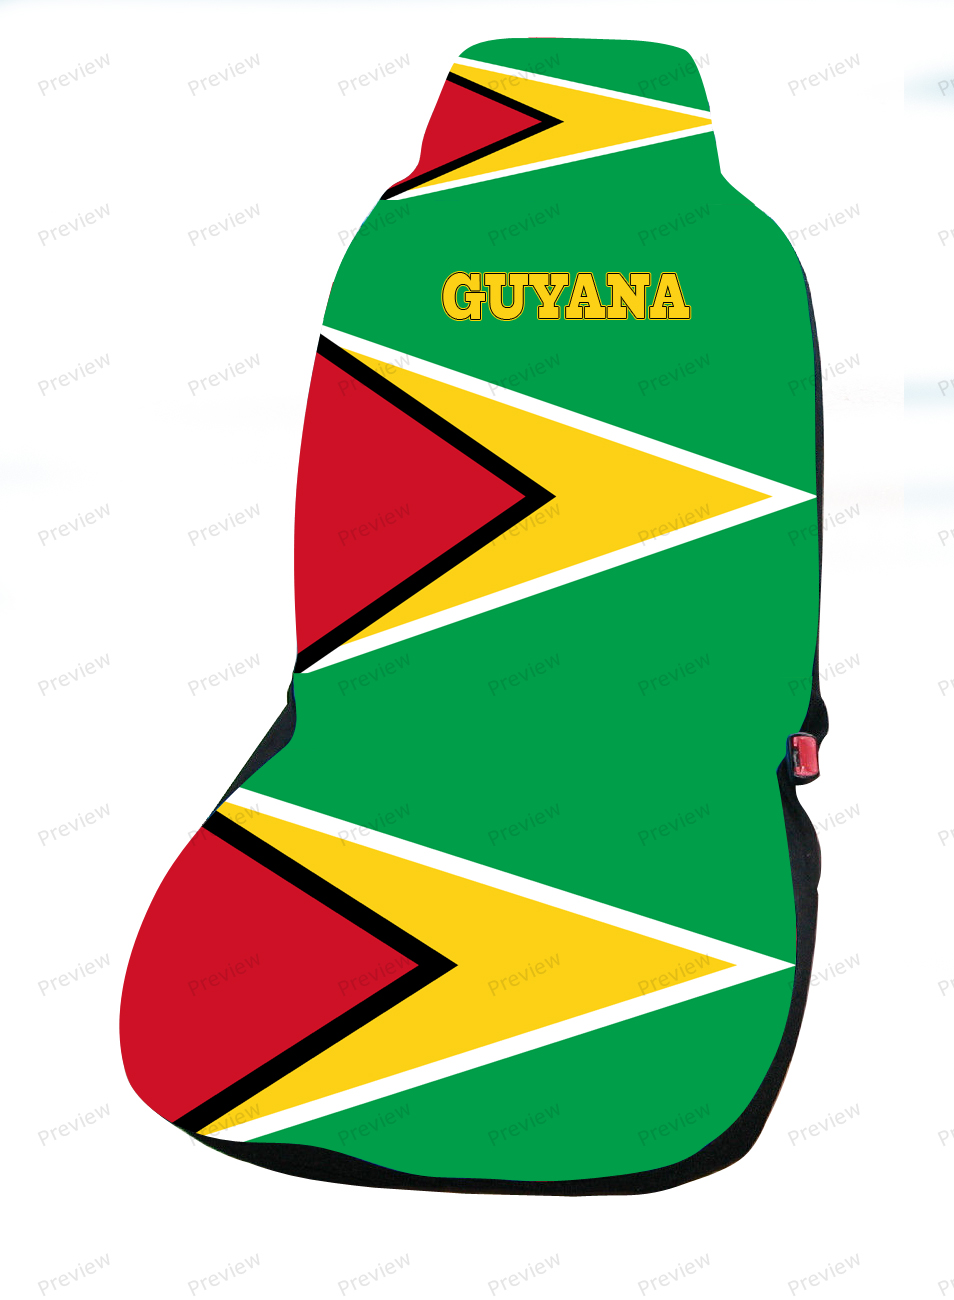 guyana car cover seat flag. Black Bedroom Furniture Sets. Home Design Ideas